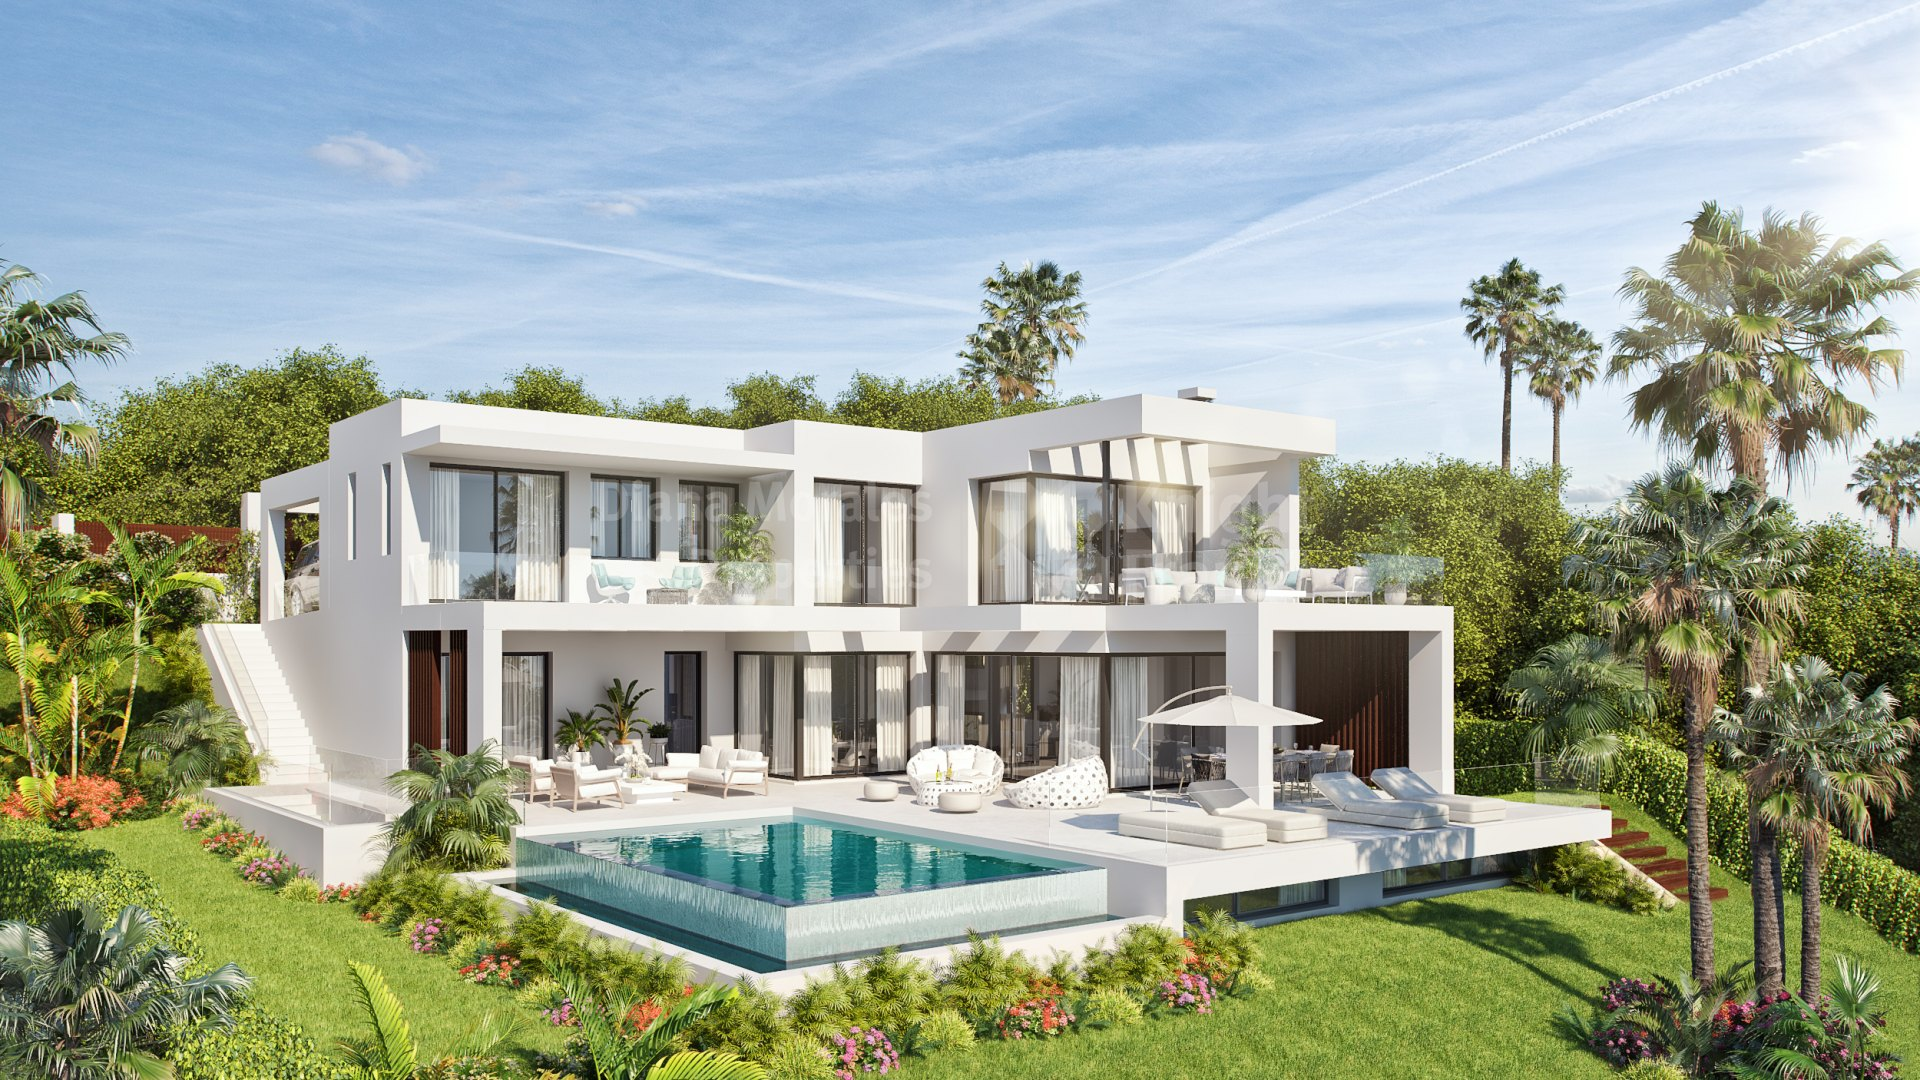 Everything you should know before buying villa for rent in Bursa